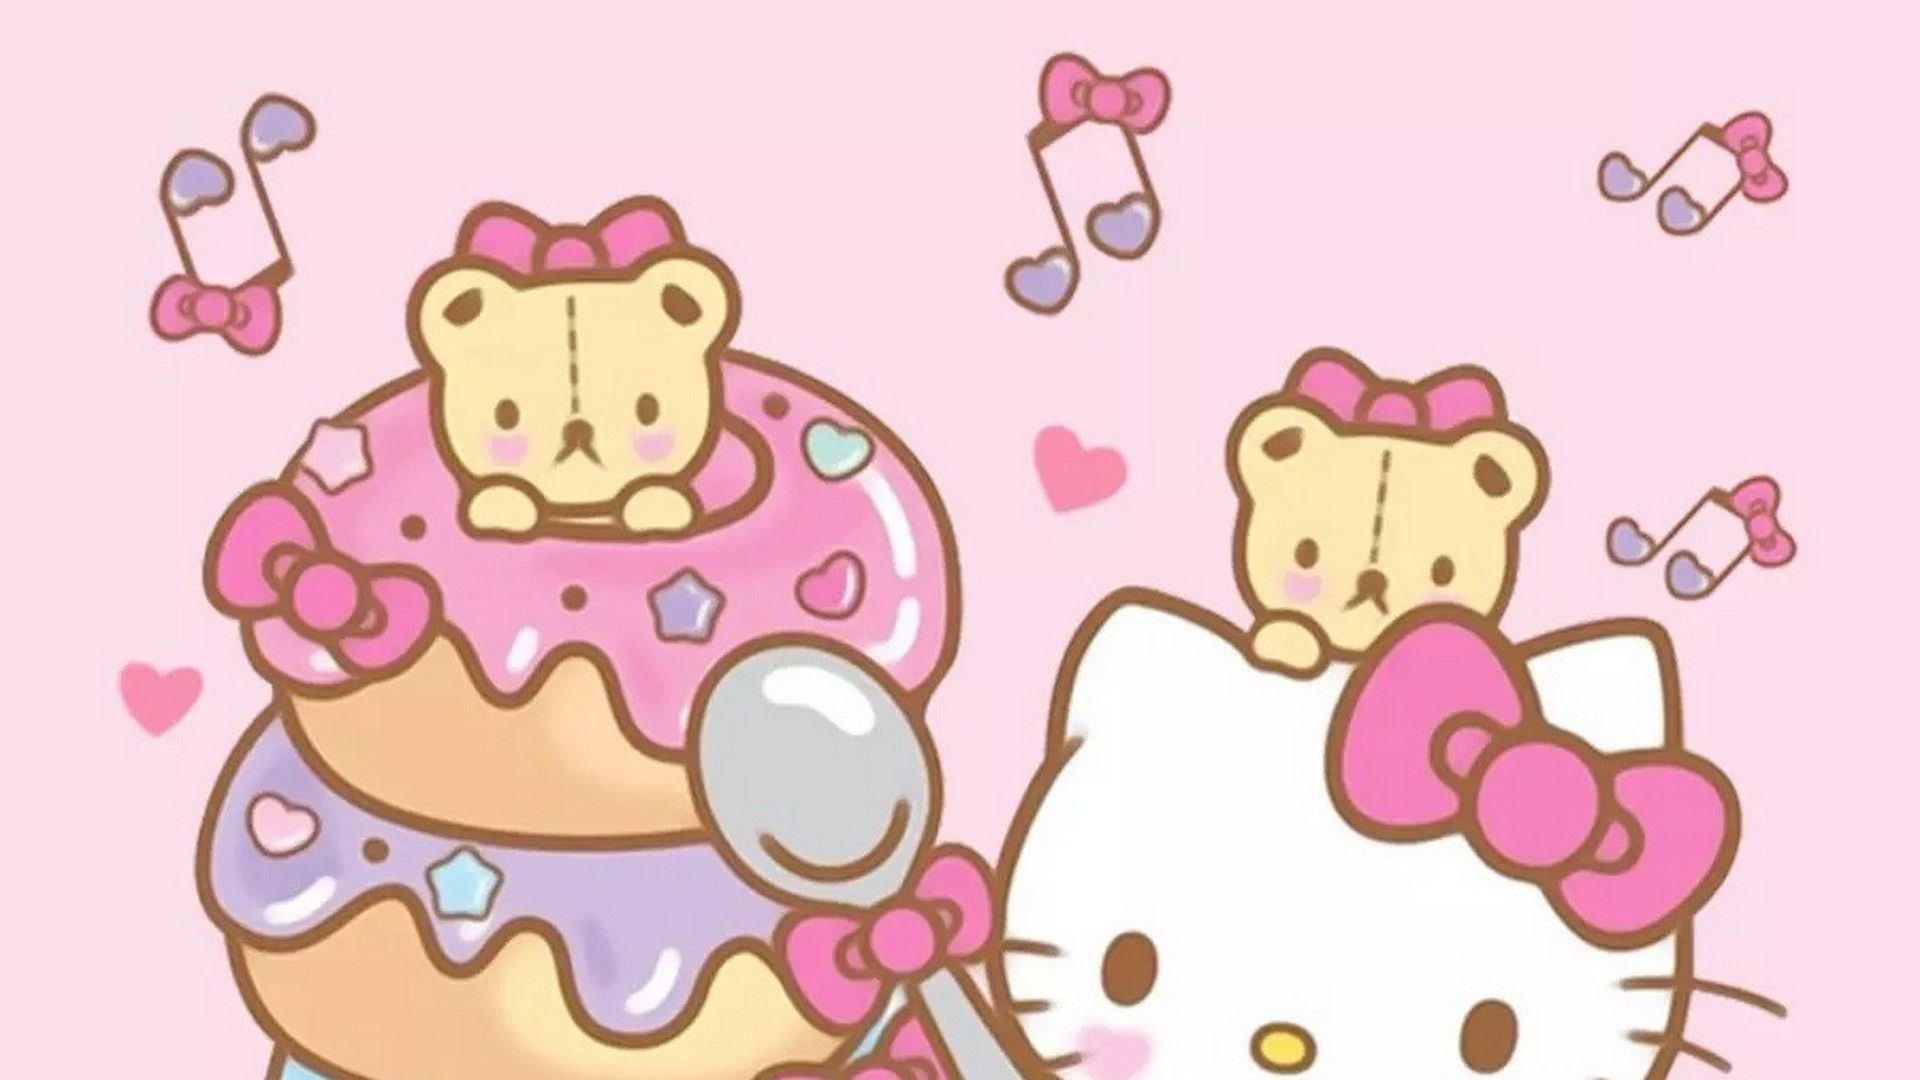 Wallpaper Hello Kitty Pictures Hd 2021 Live Wallpaper Hd Hello Kitty Pictures Cute Wallpapers Kitty Wallpaper